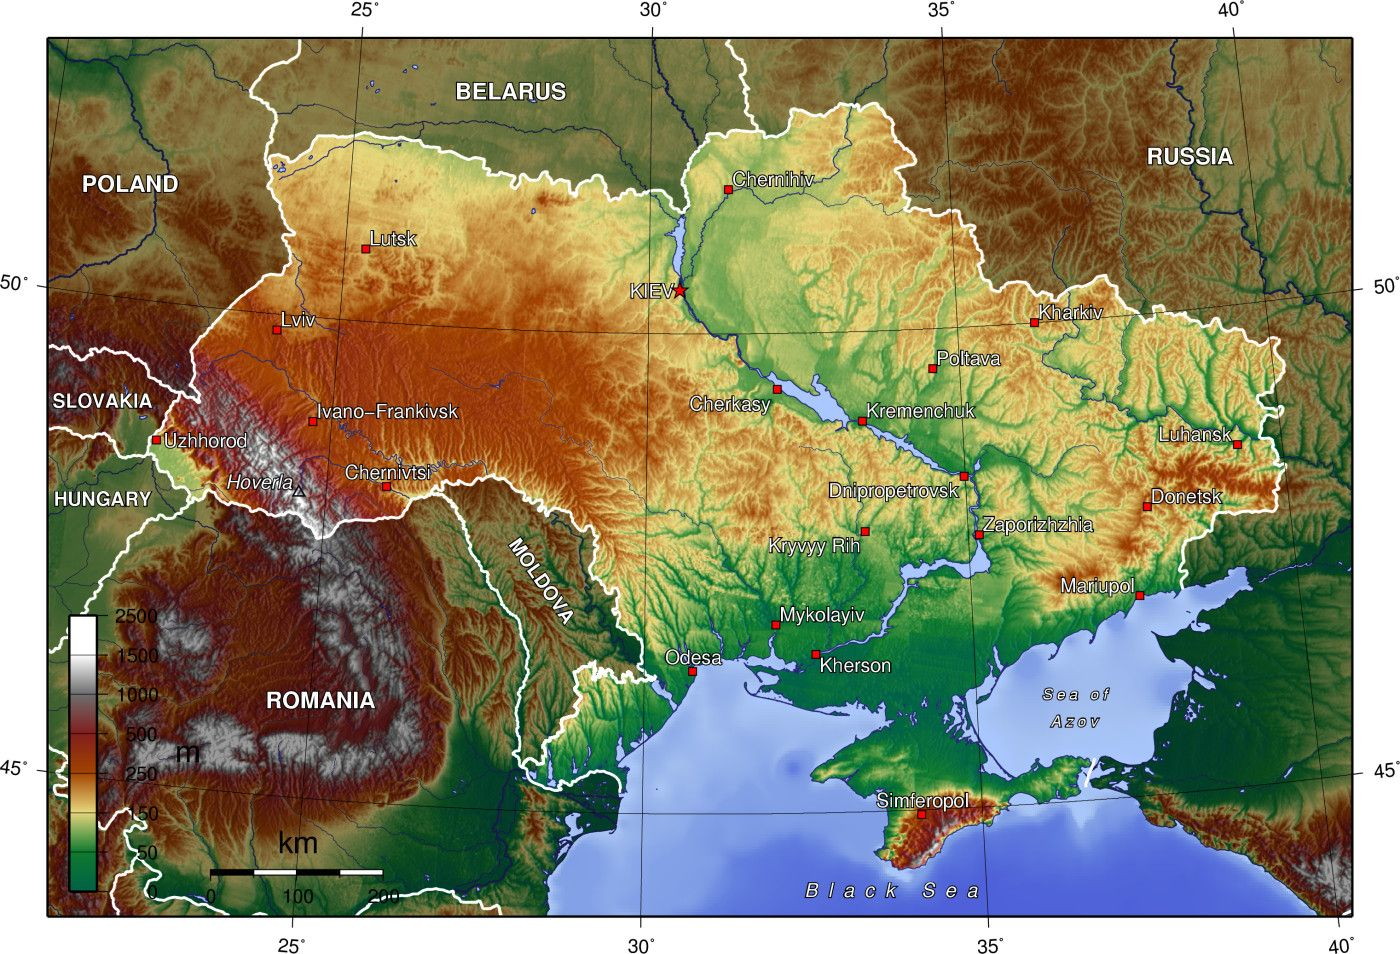 Topographic map of Ukraine interesting map Maps Pinterest